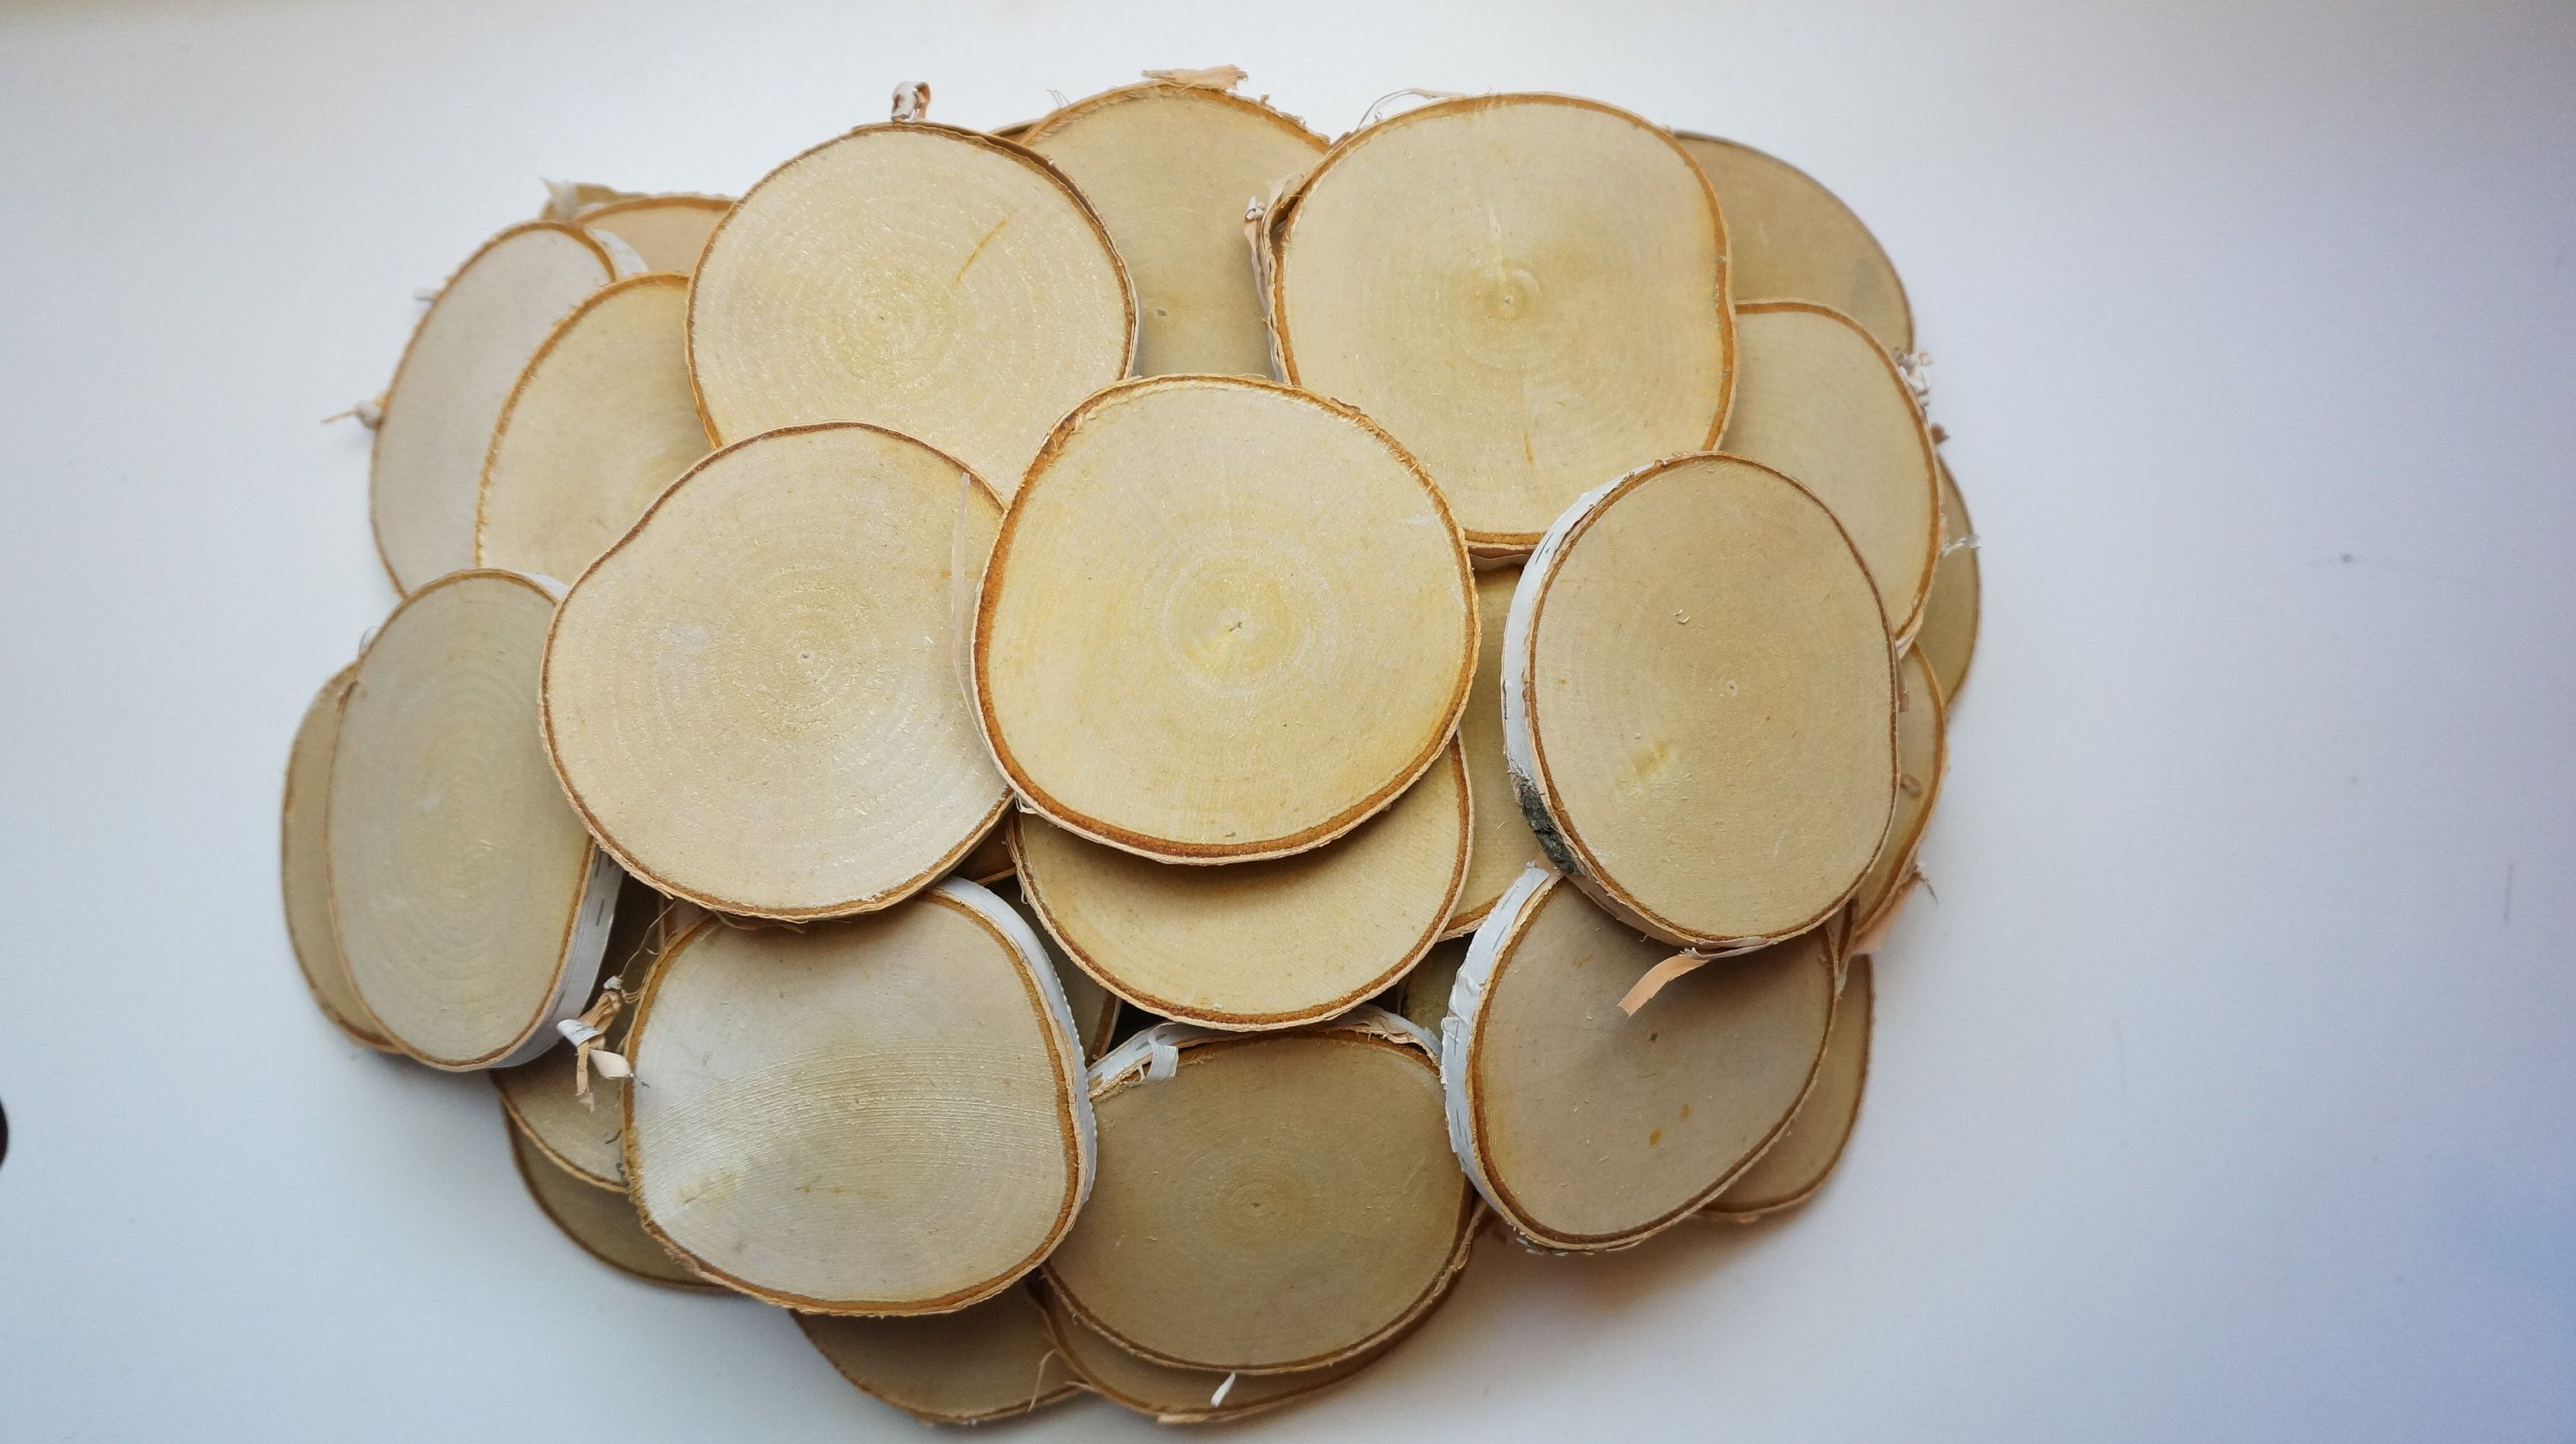 40 Birch Tree Slices 3 1 4 3 3 4 Inch Wooden Wedding Favors Ornament Blanks Log Slabs Pyrography Supp What Sells On Etsy Wedding Favors Mint Wedding Favors